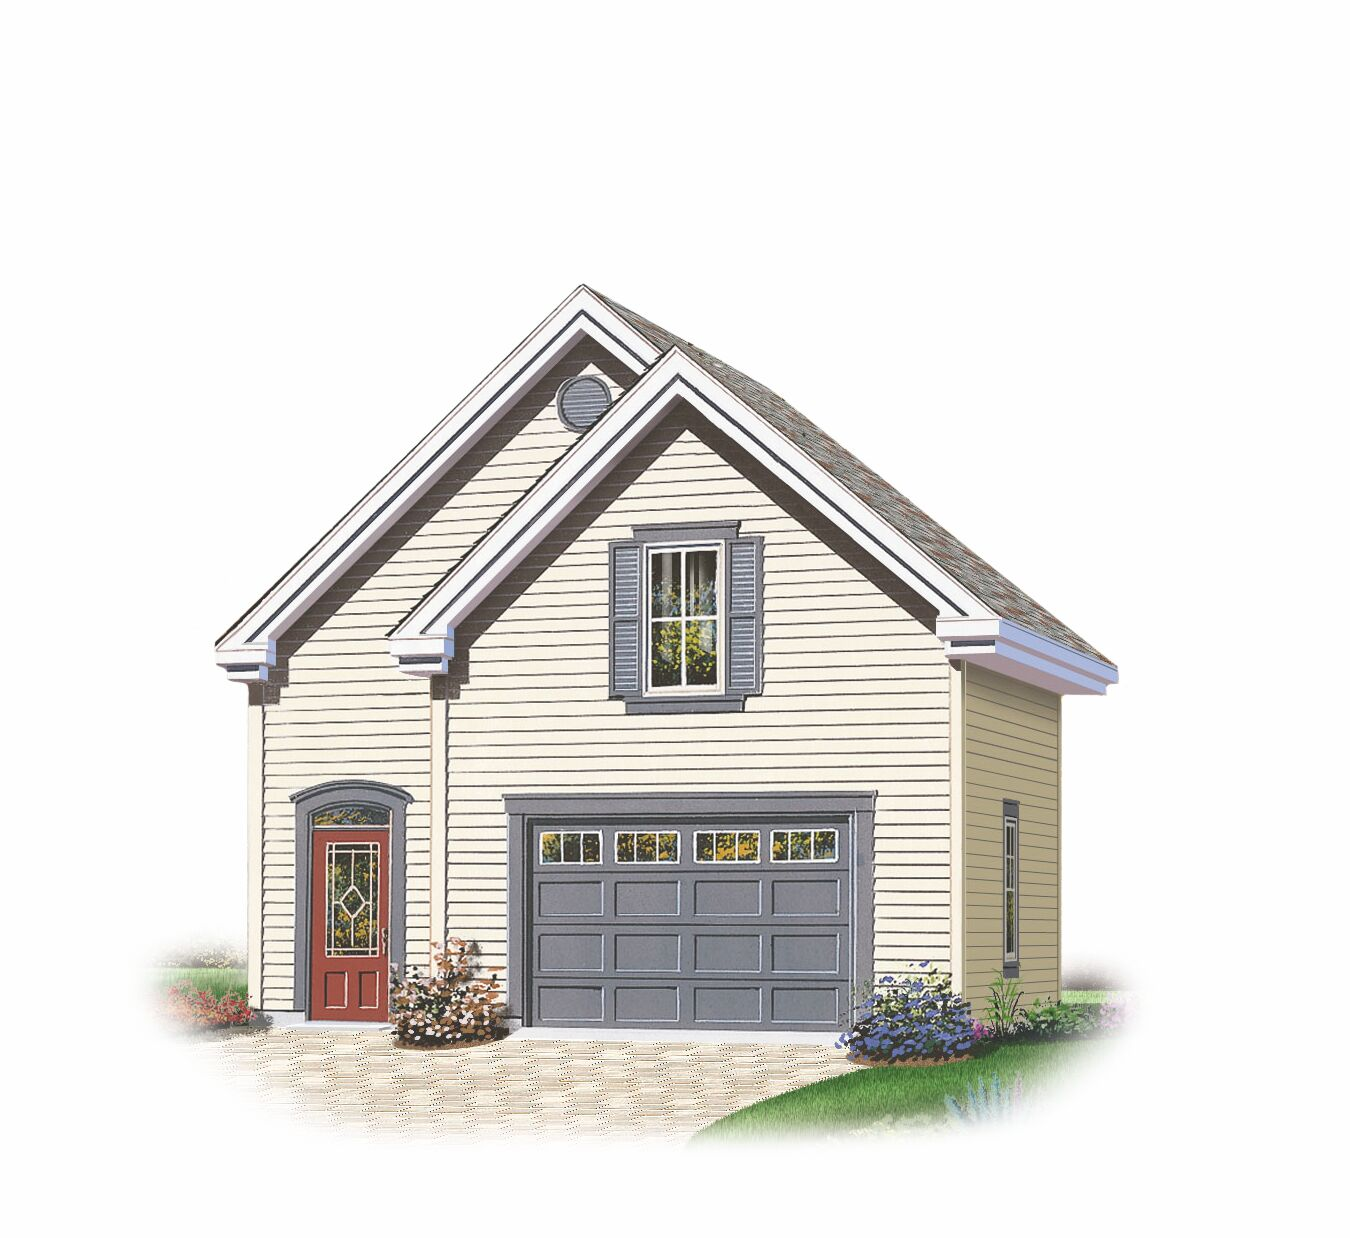 Garage plans with loft and house plans from design for Garage plans with loft